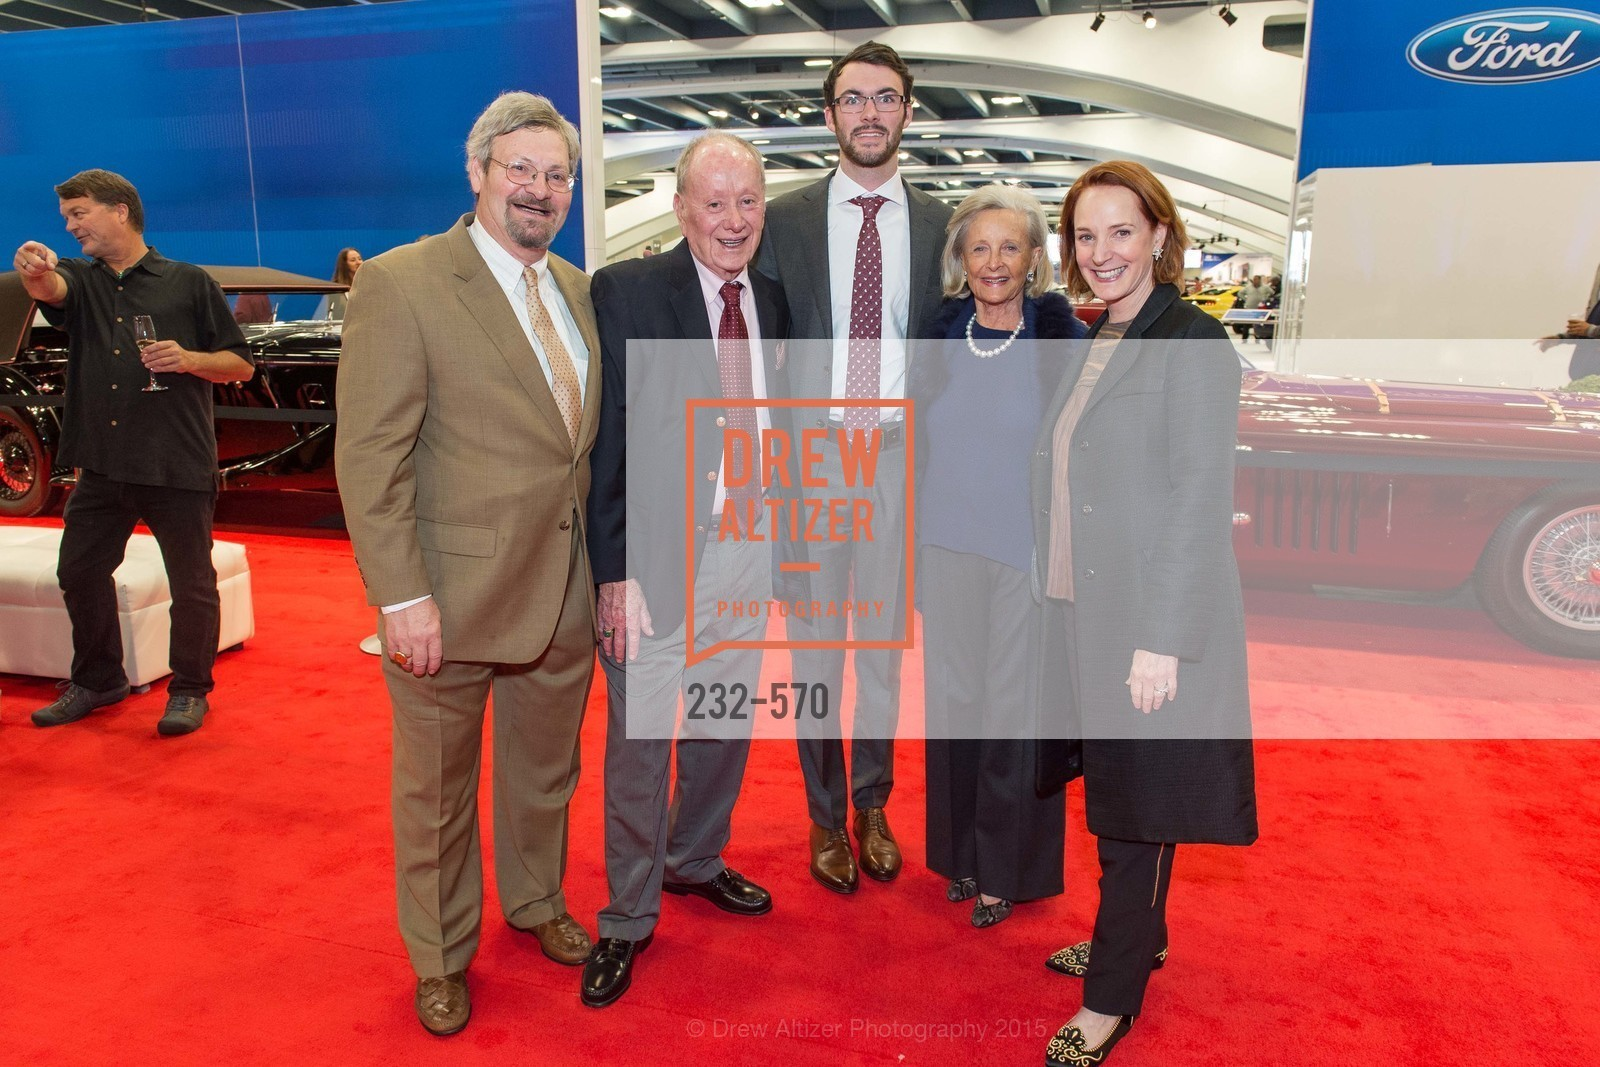 Jerry Messina, George Newhall, Patsy Pope, Julie Newhall, Academy of Art University Reception at the 58th Annual SF International Auto Show, Moscone Convention Center. 747 Howard St, November 20th, 2015,Drew Altizer, Drew Altizer Photography, full-service agency, private events, San Francisco photographer, photographer california